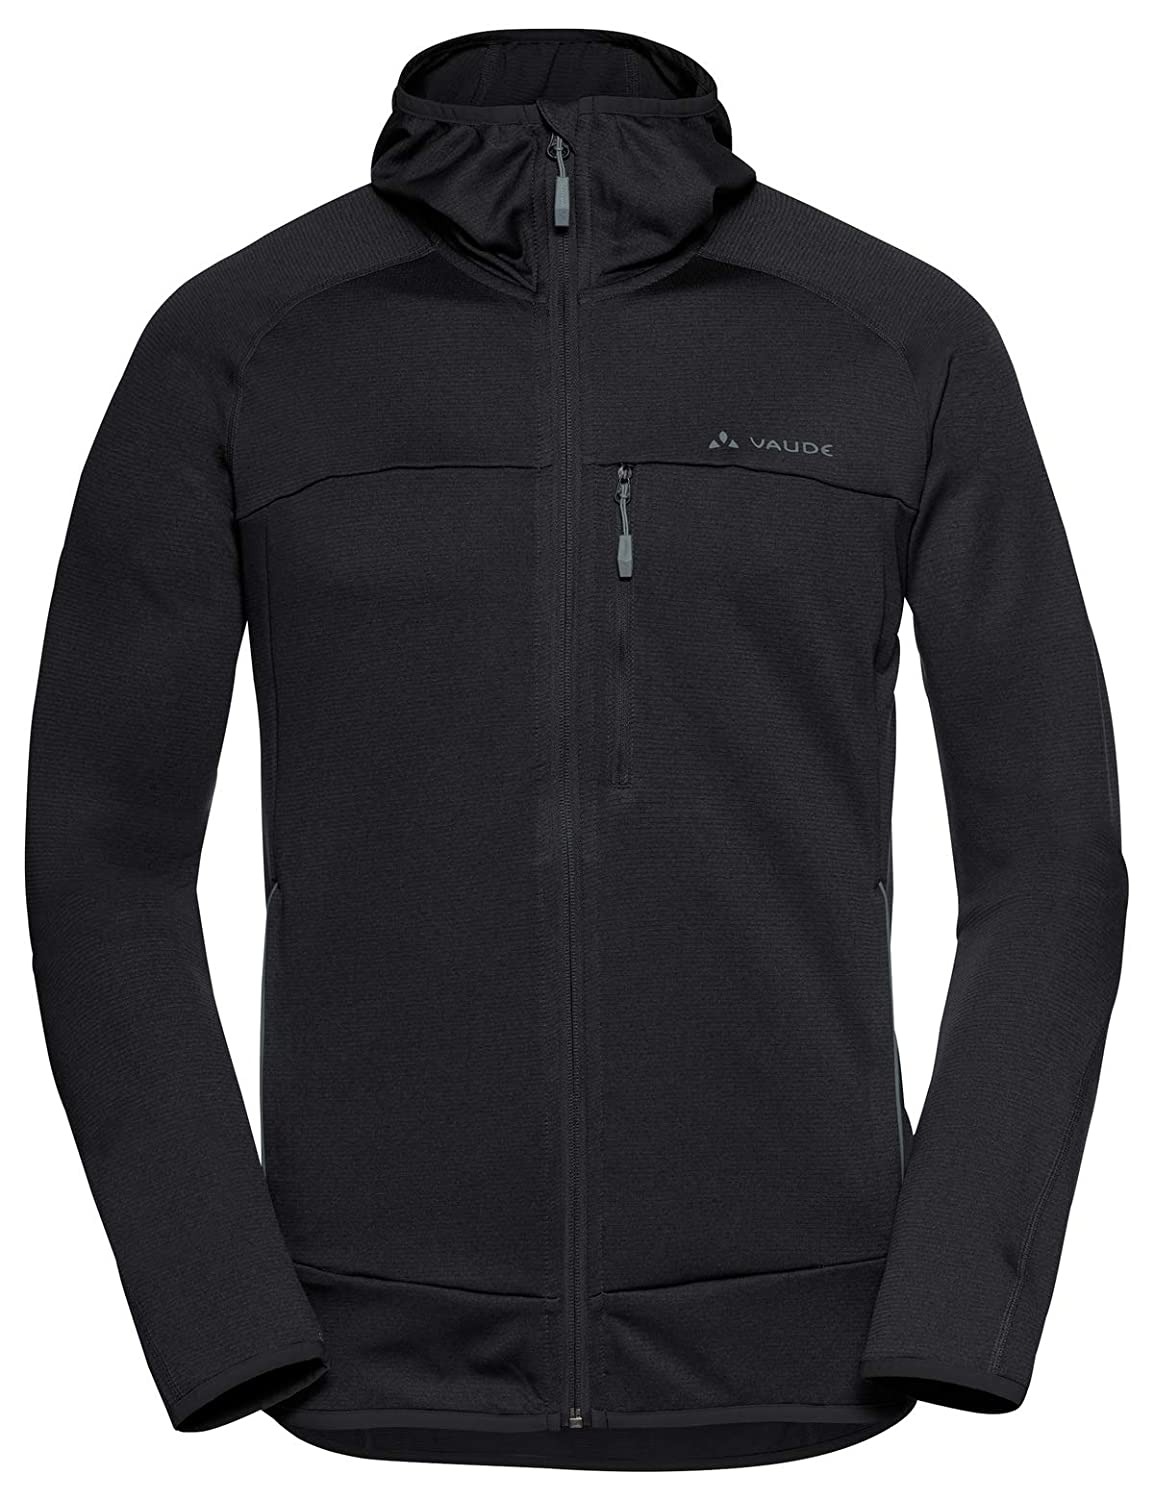 Vaude Herren Men's Tekoa Fleece Jacket Jacke